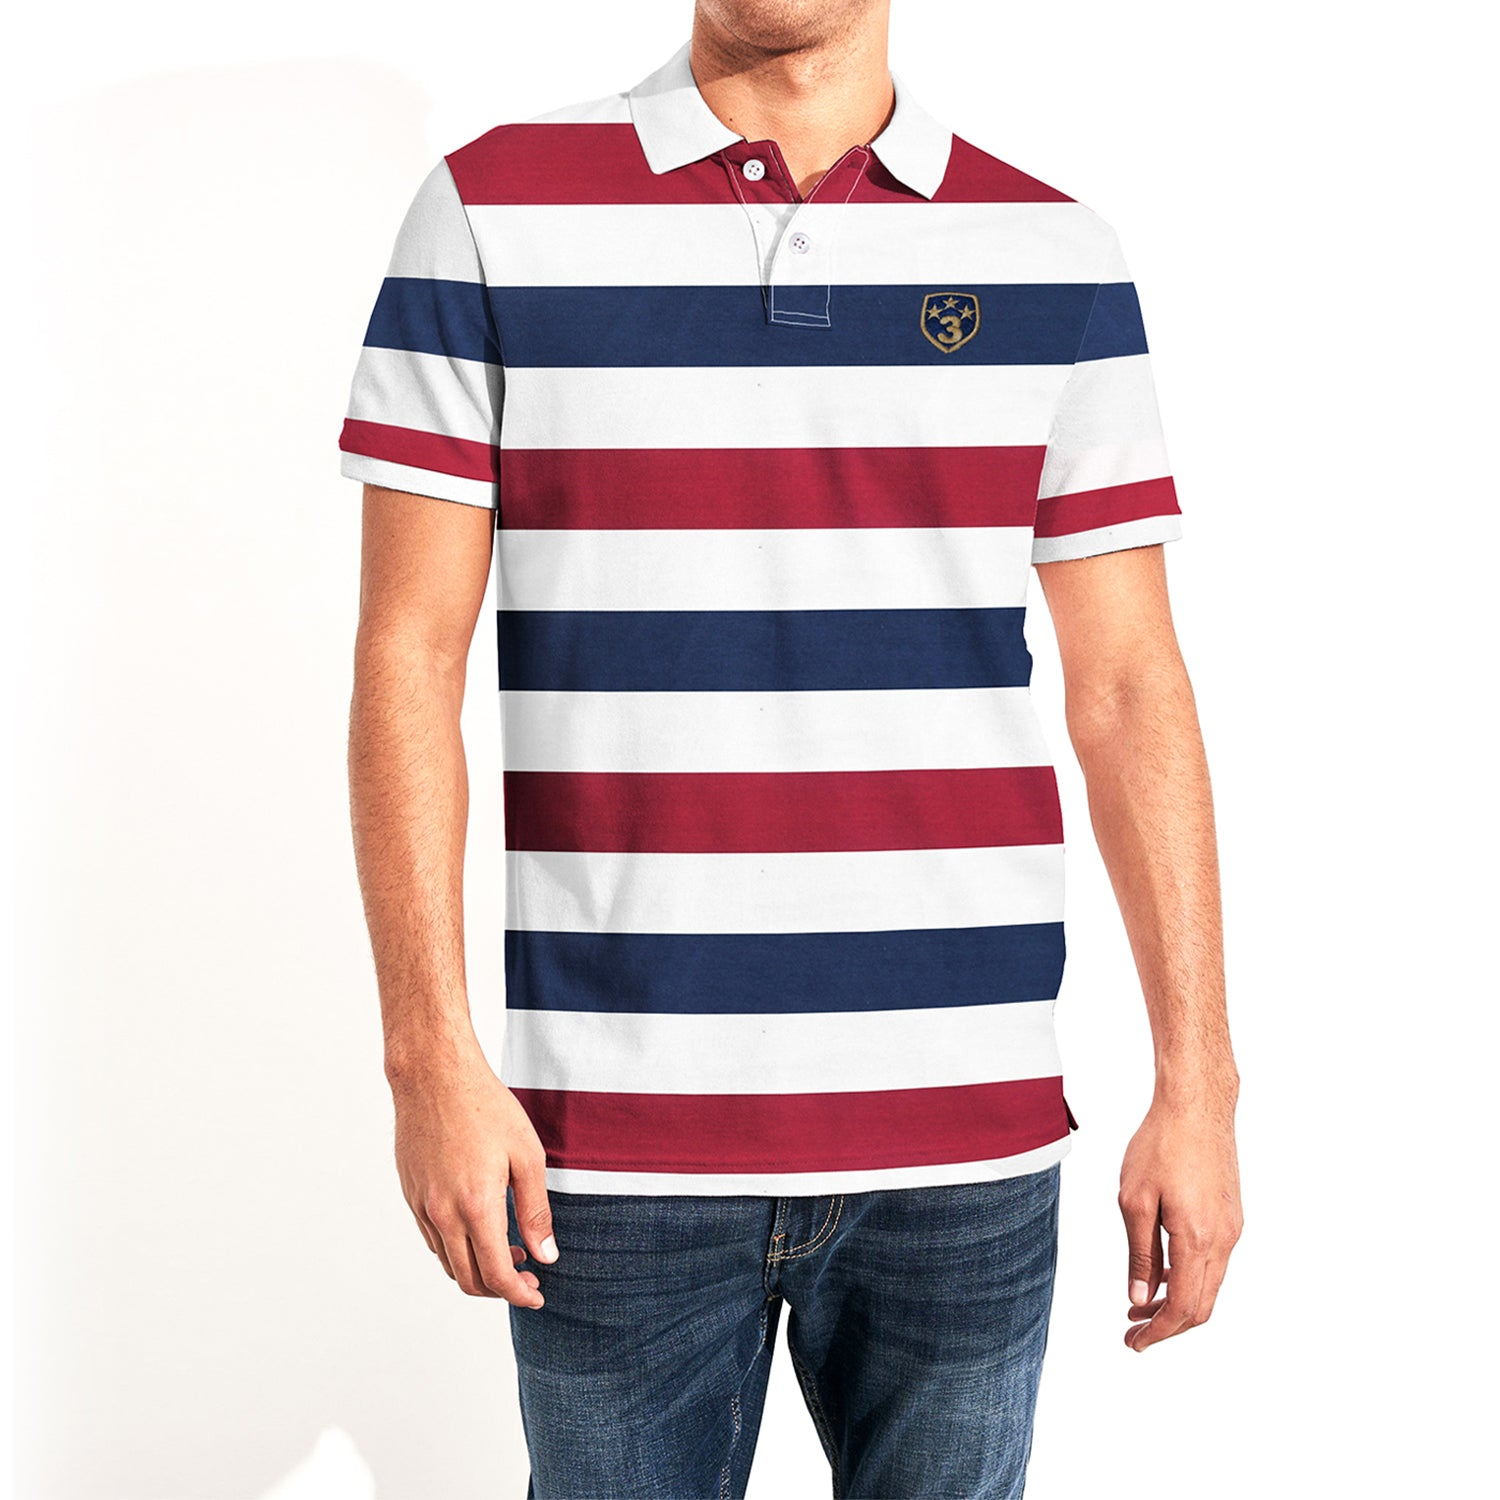 GAP Short Sleeve P.Q Polo Shirt For Men-White-Blue-Red Striped-NA7976